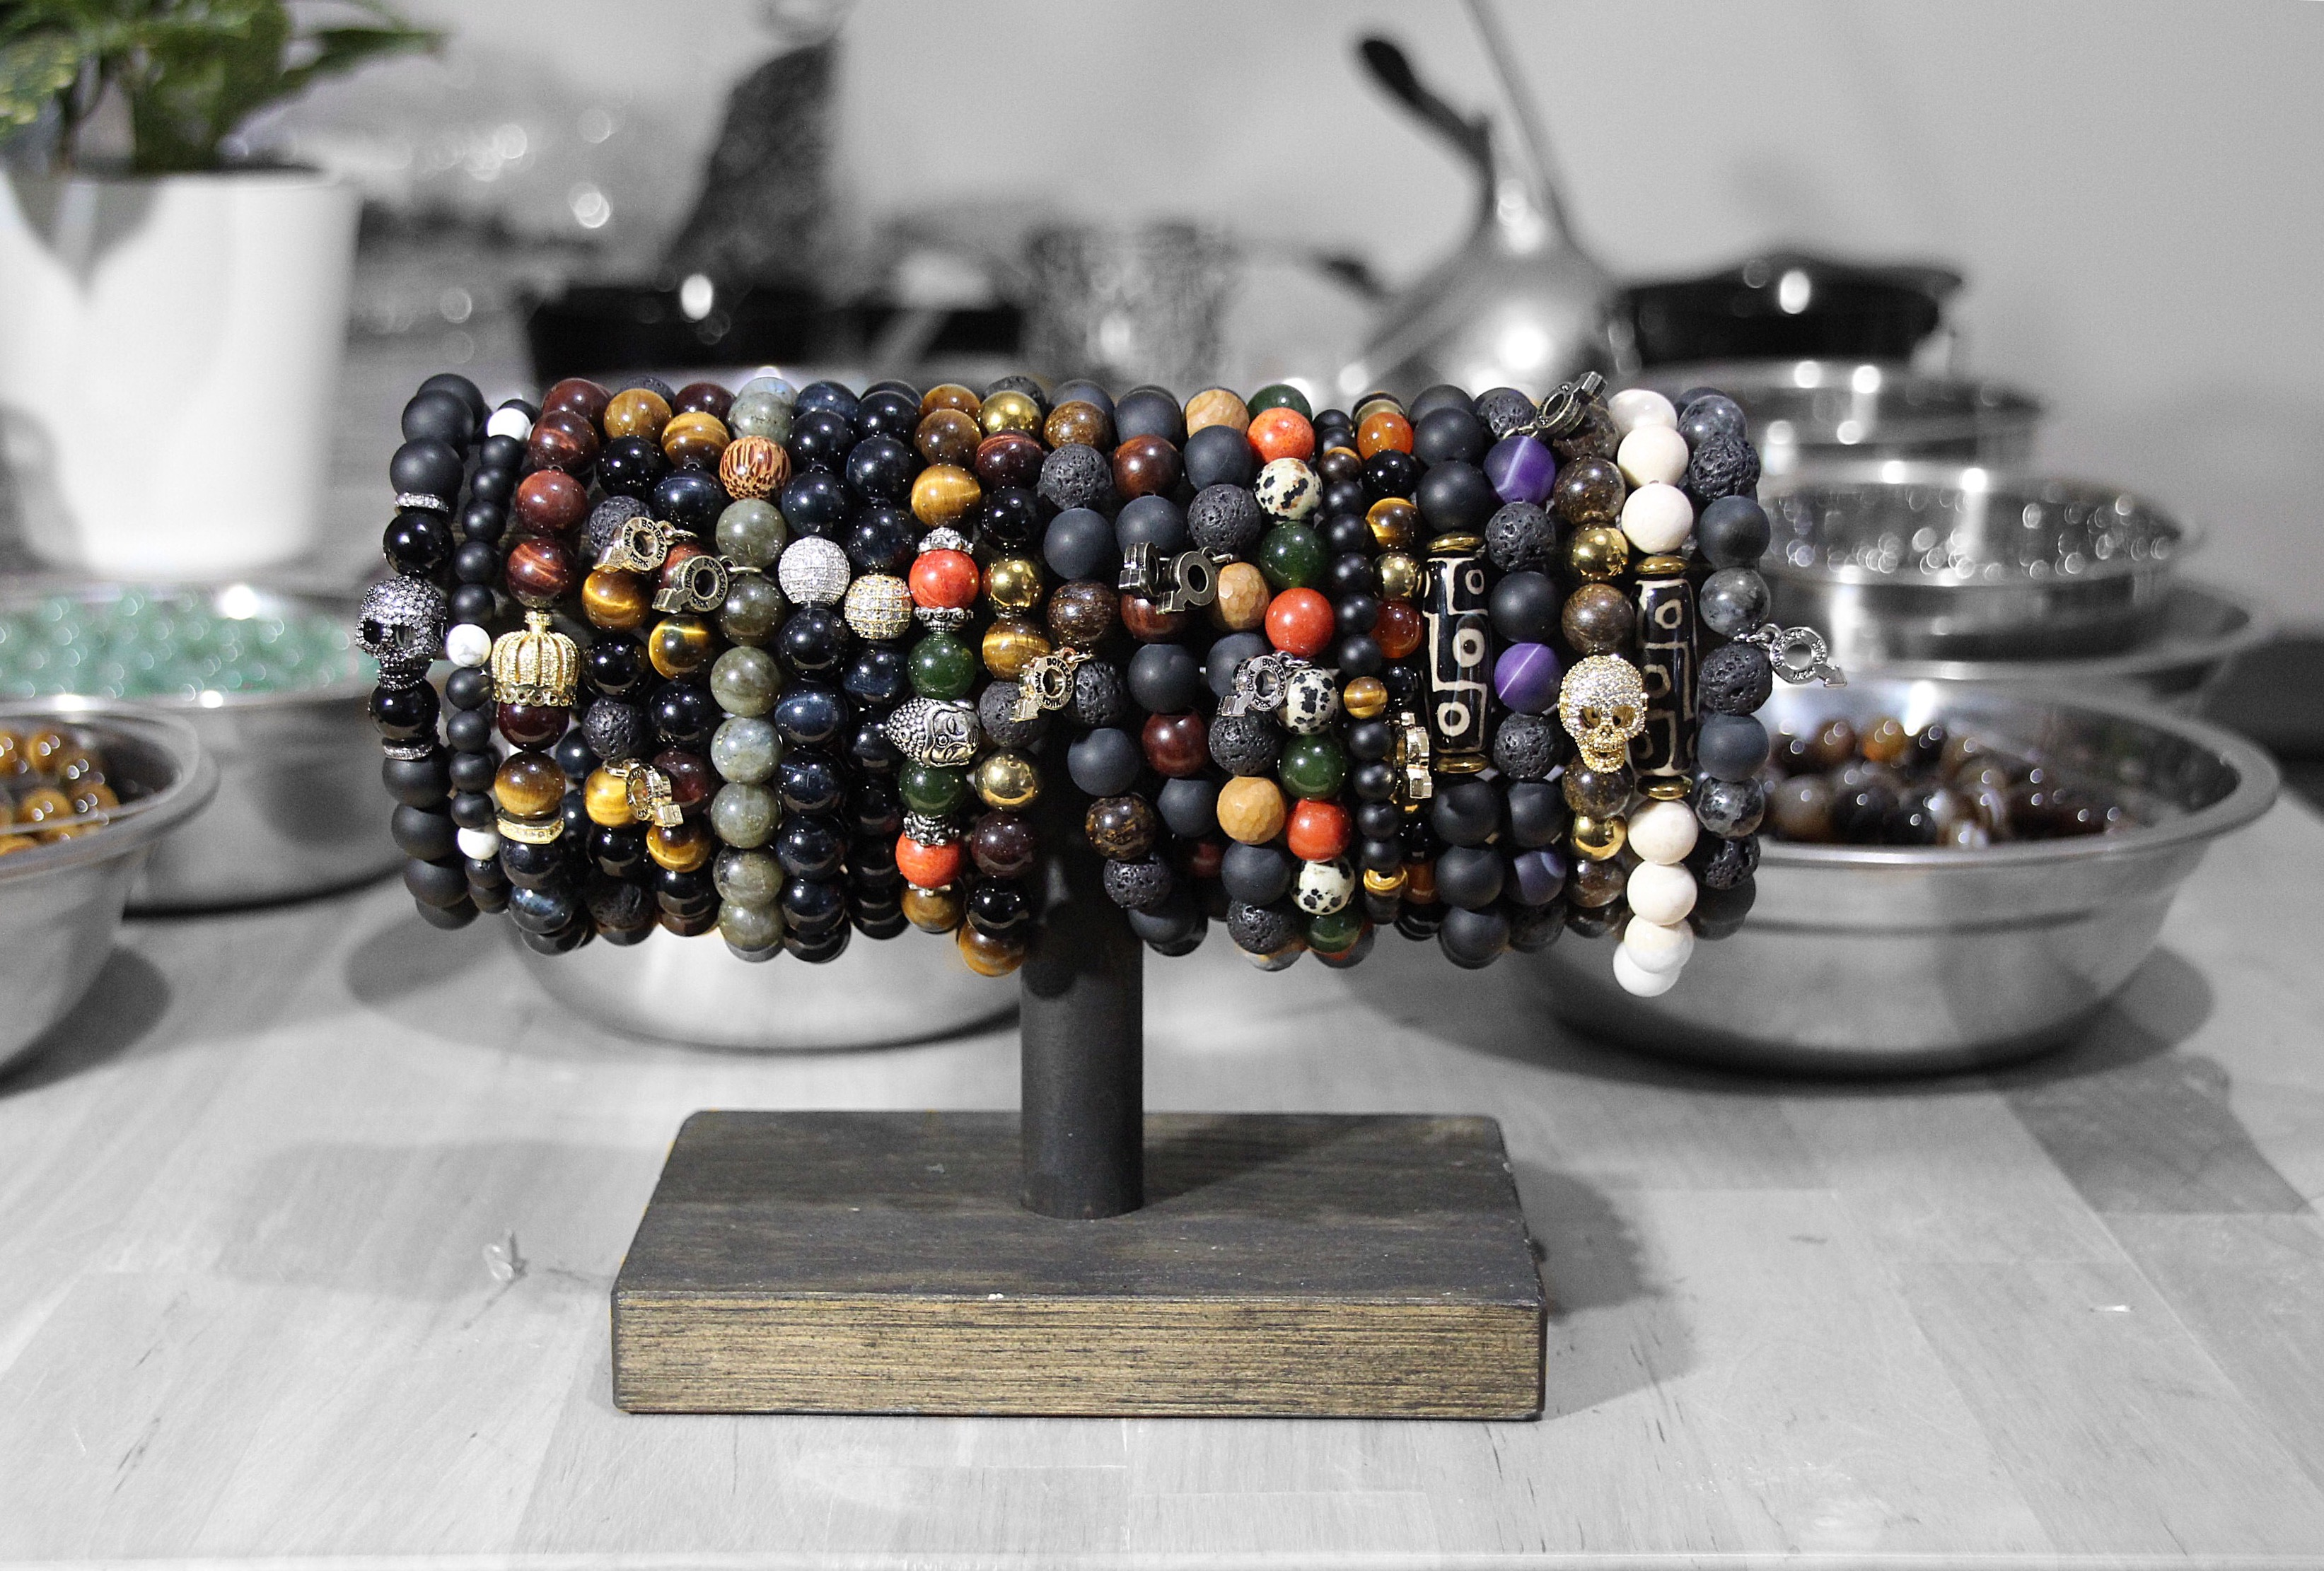 bead-necklaces-bracelets-for-guys-dudes-my-husband-boyfriend-dad-brother-son-boybeads-new-york-harlem-mens-fashion-company-llc-small-business-new-york-black-owned.jpg